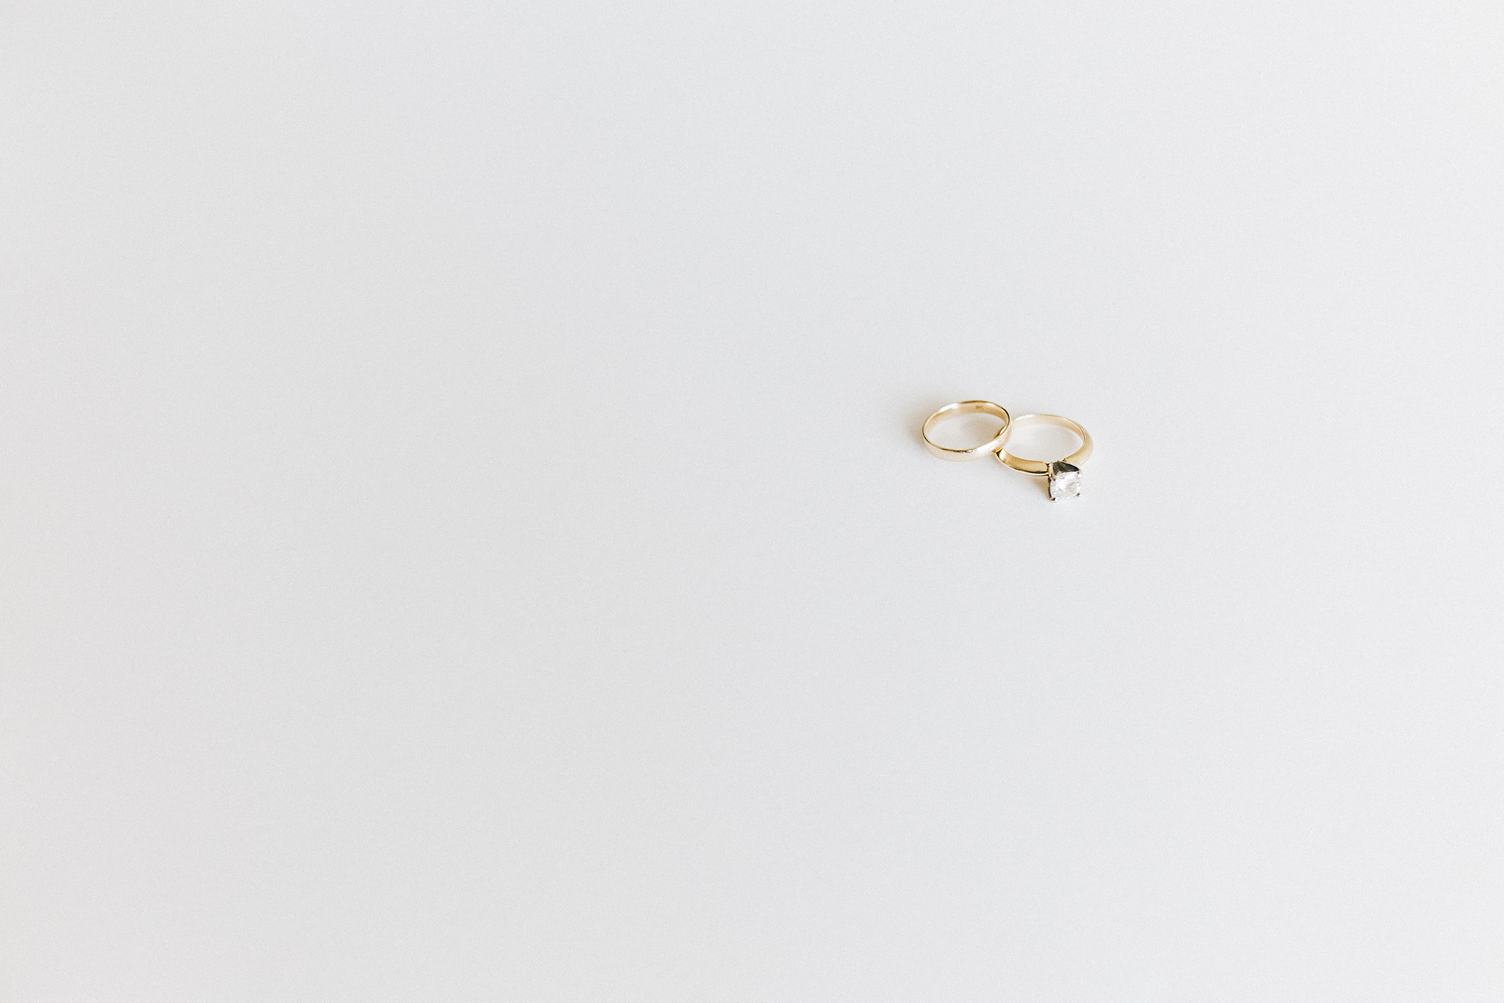 Wedding and Engagement Gold Rings against White Background